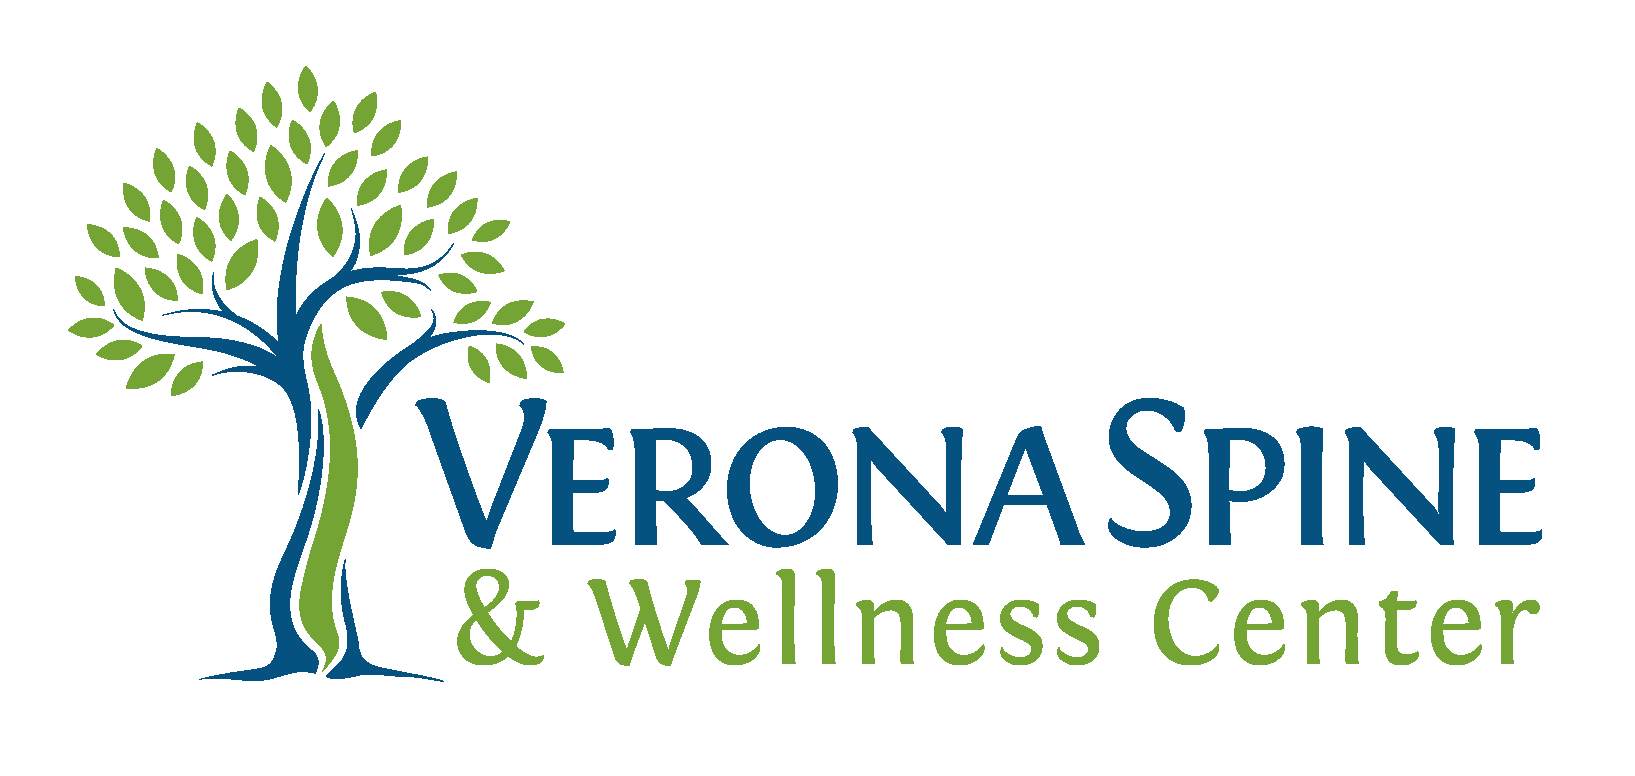 Verona Spine & Wellness Center, links to their site